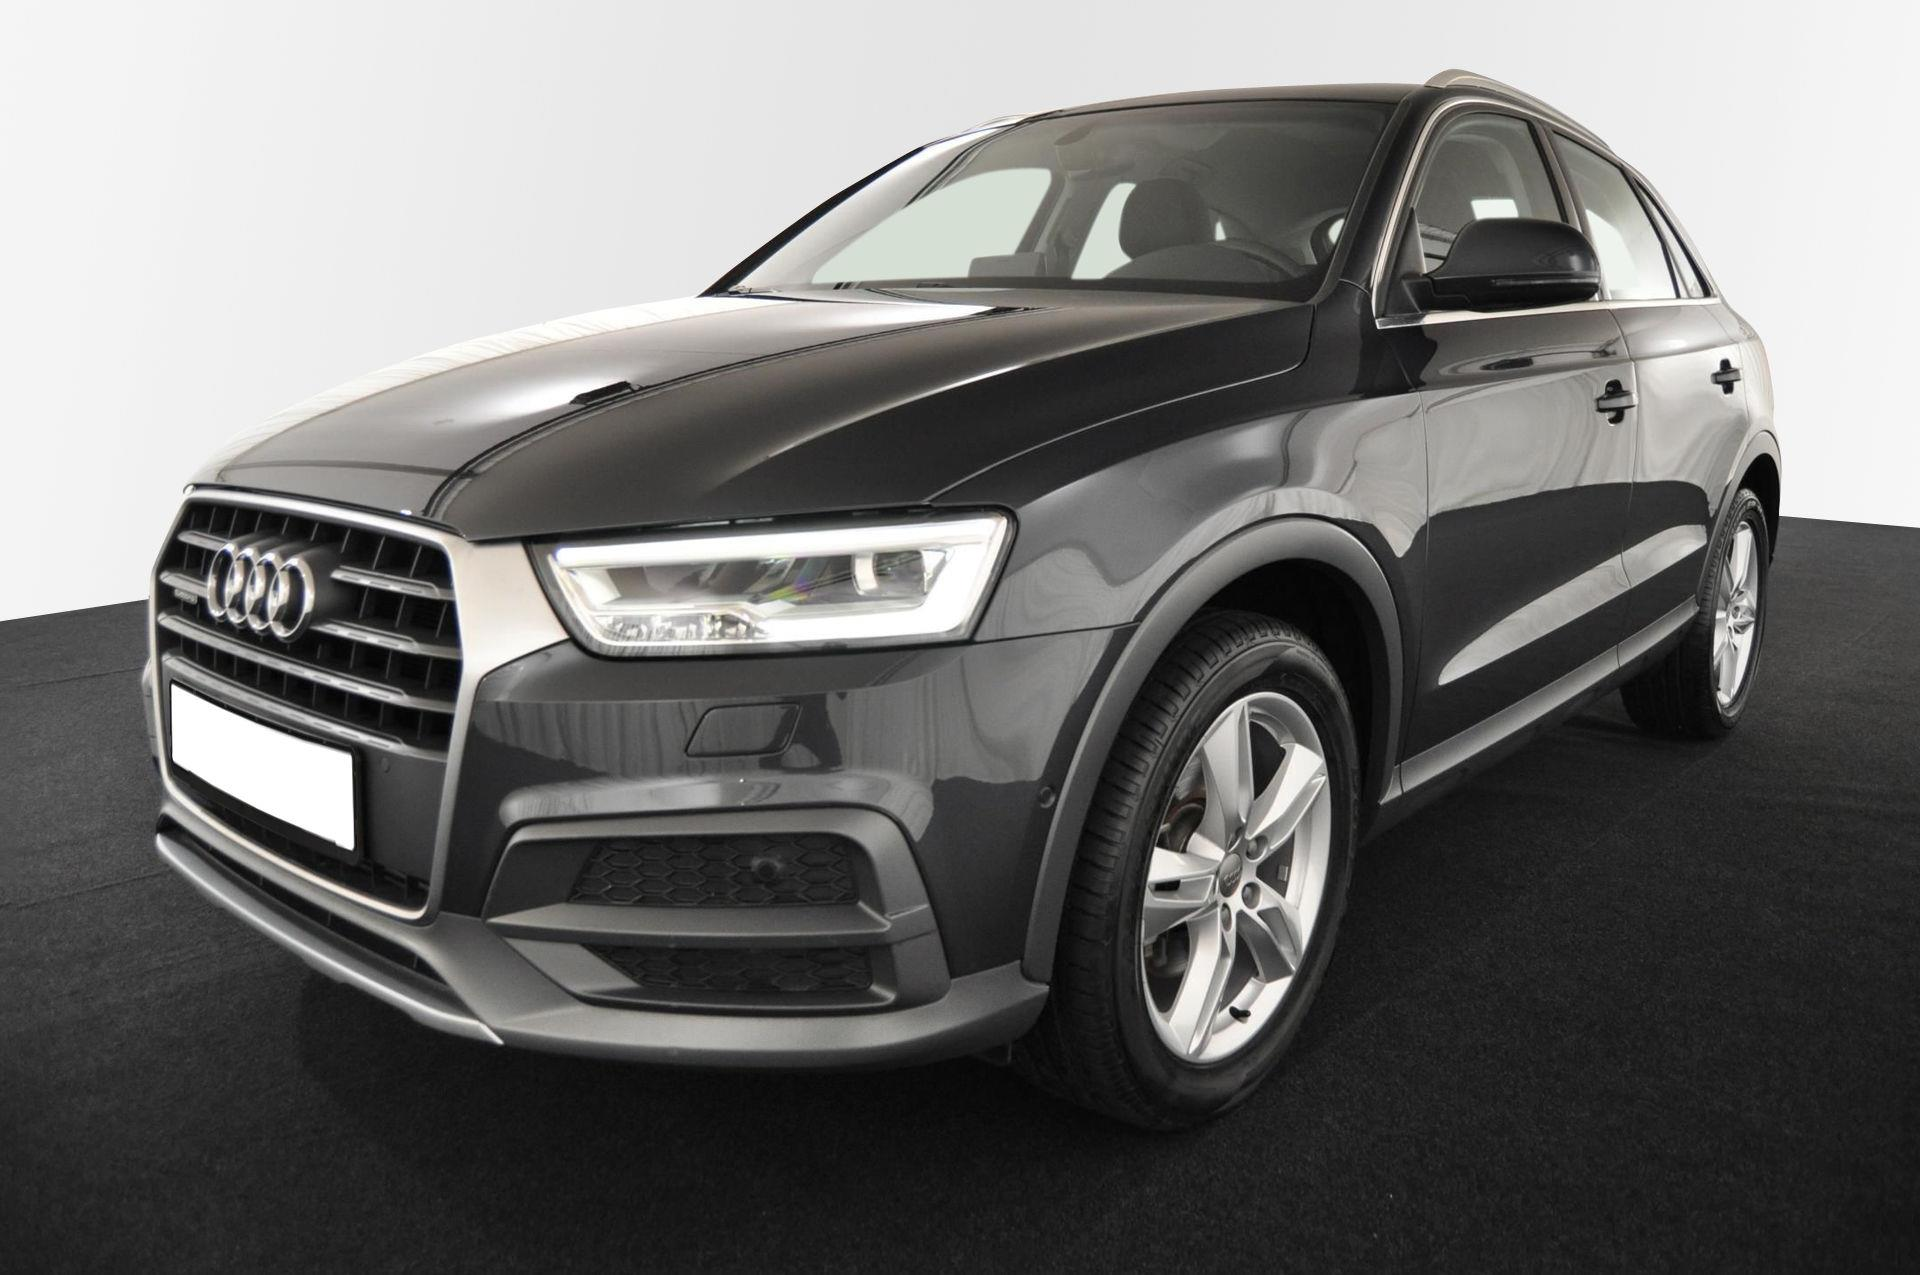 Q3 2.0 TFSI * Quattro * Led * Navi * Parking assistant * Llantas 18 0000006684